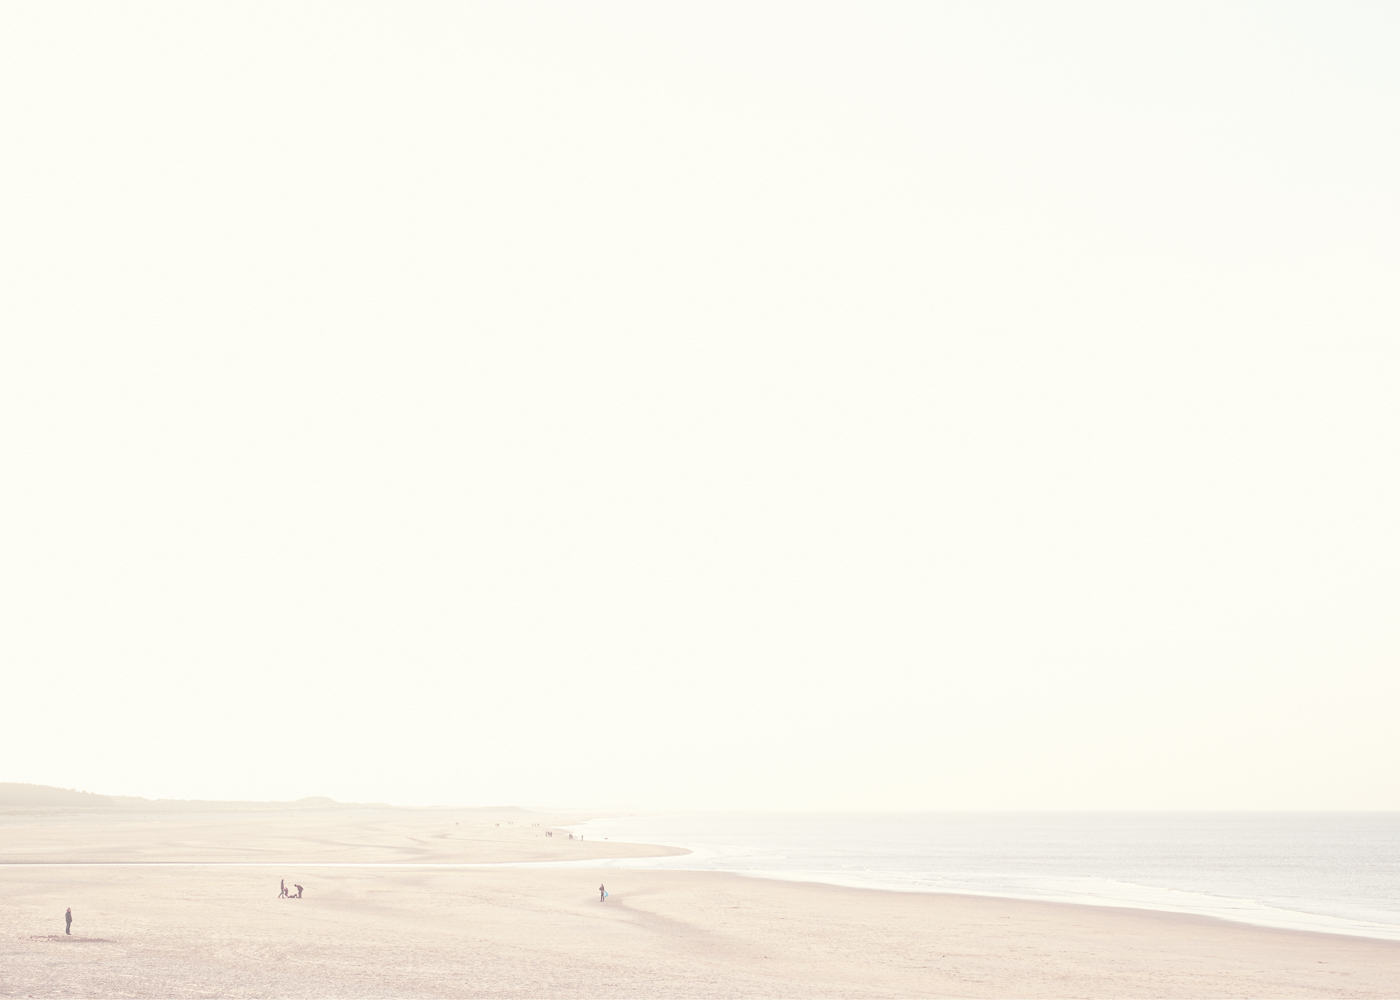 My last frame of 2014. Shot on Holkham Beach. What a fantastic year it's been. Here's to 2015 being as joyous andphotographicallyfruitful.